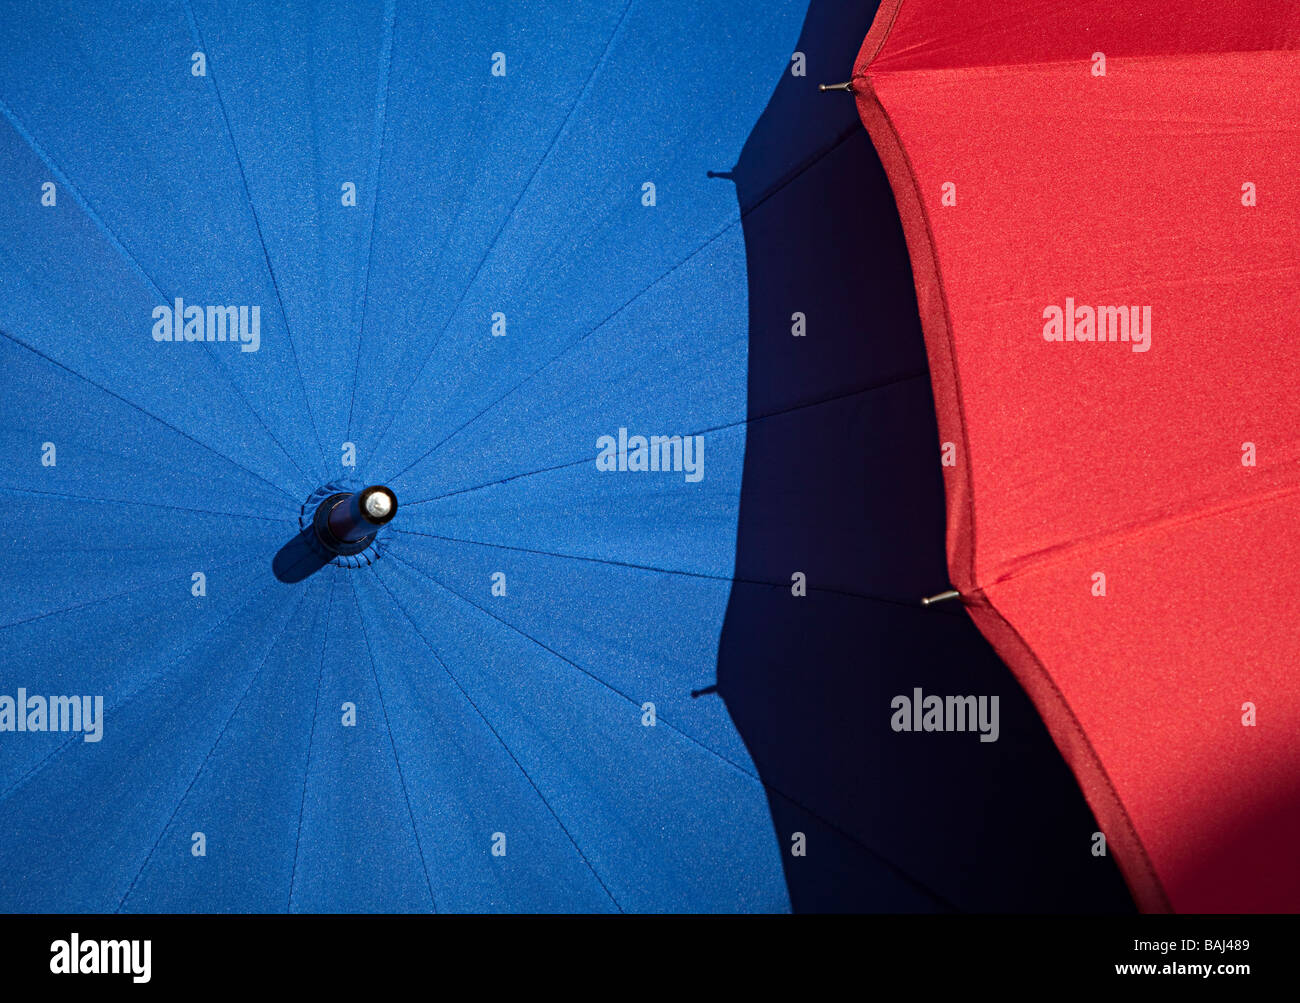 Blue and red umbrellas - Stock Image